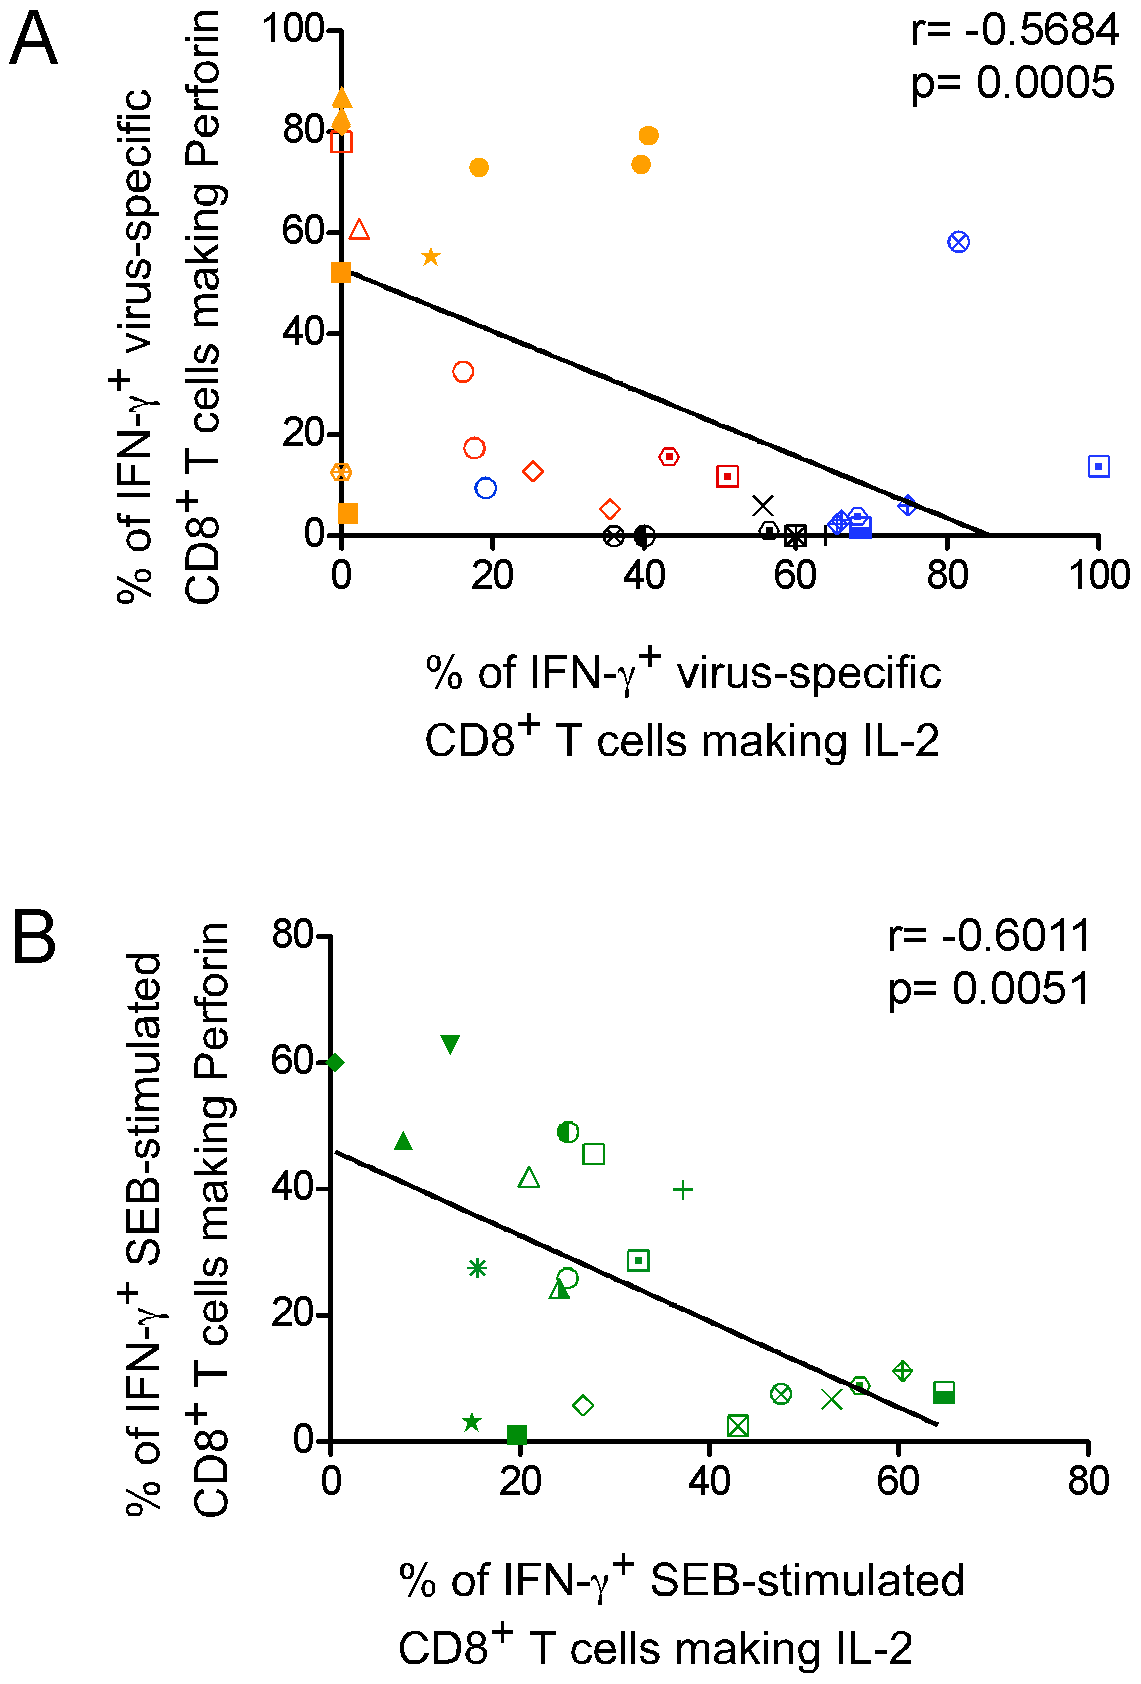 Rapid perforin upregulation and IL-2 production are inversely correlated functions of virus-specific CD8<sup>+</sup> T cells.